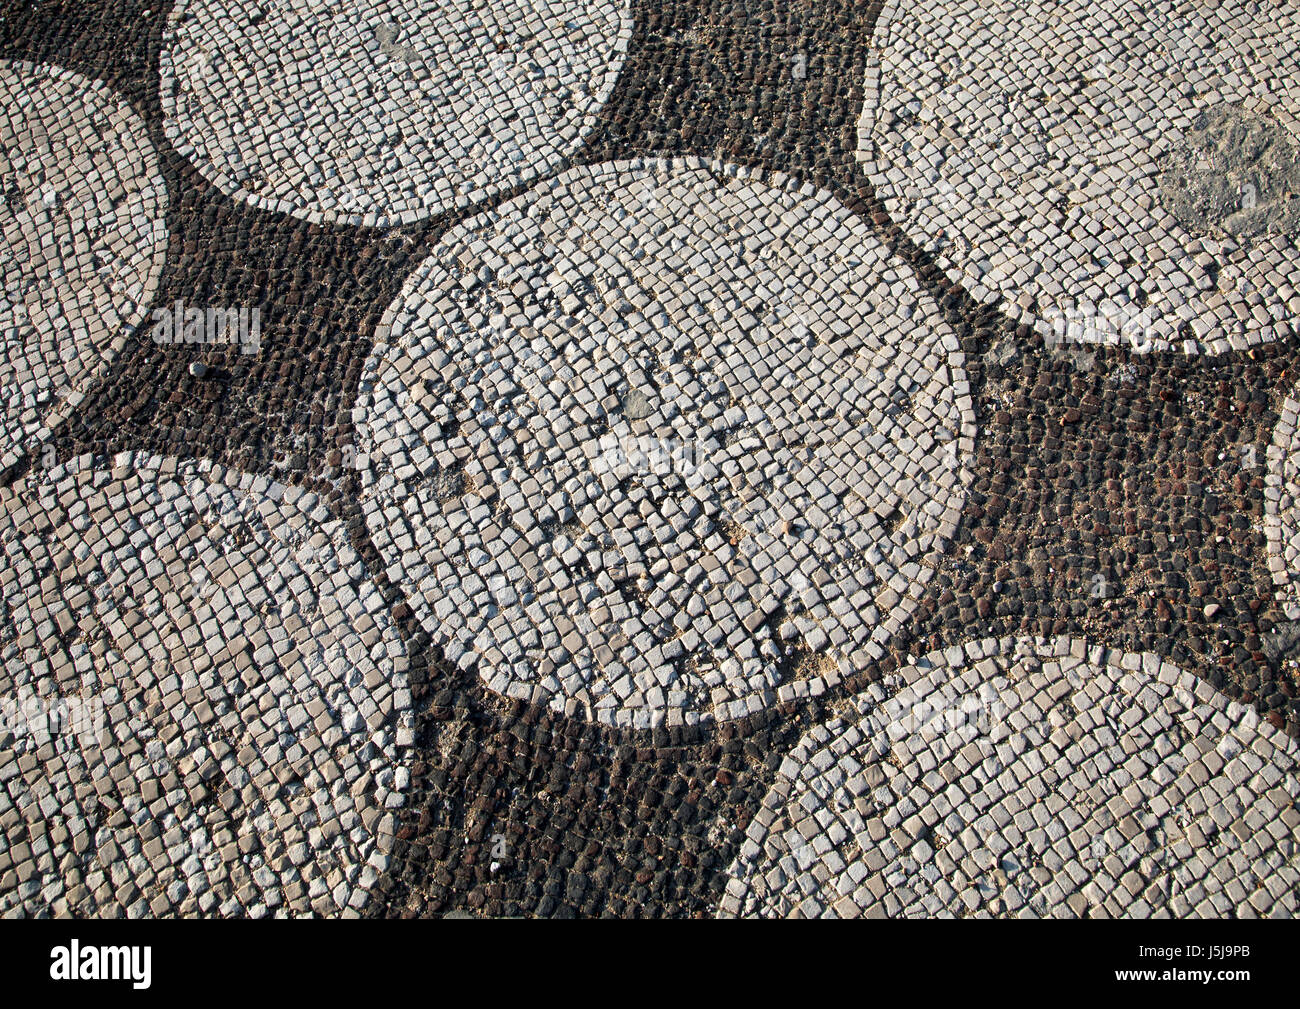 Mosaics in al-mina archaeological site, South Governorate, Tyre, Lebanon - Stock-Bilder